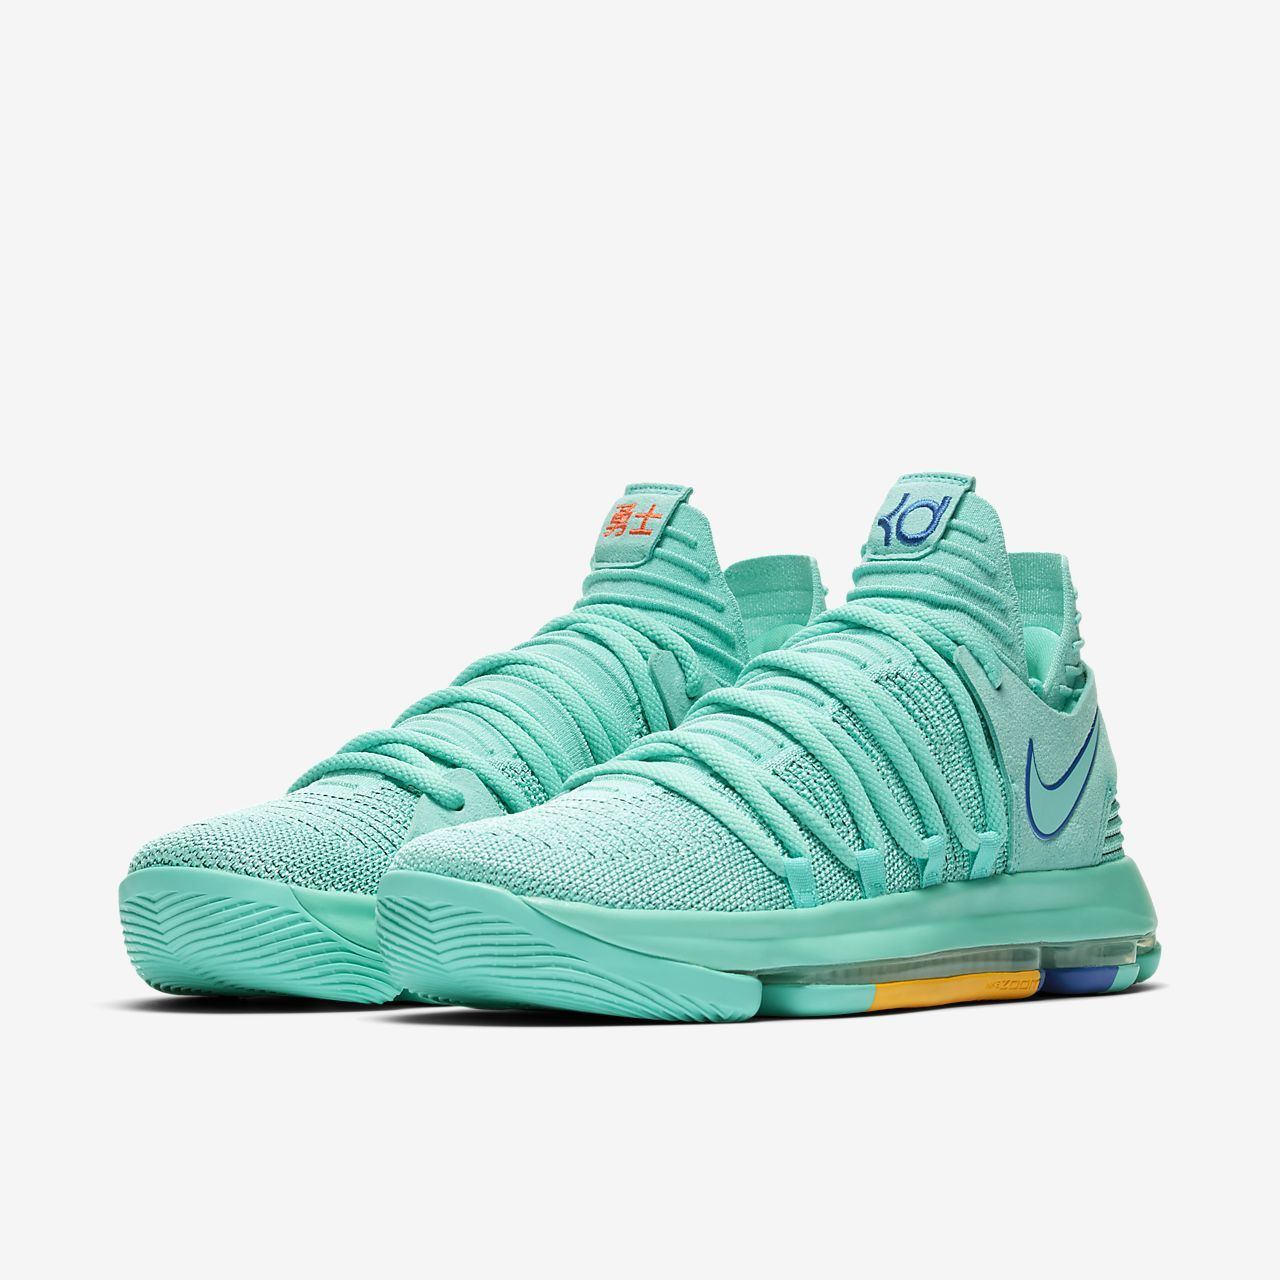 Nike Kd X Hyper Turquoise Basketball Shoes Basketball Shoes For Men Adidas Basketball Shoes Basketball Clothes